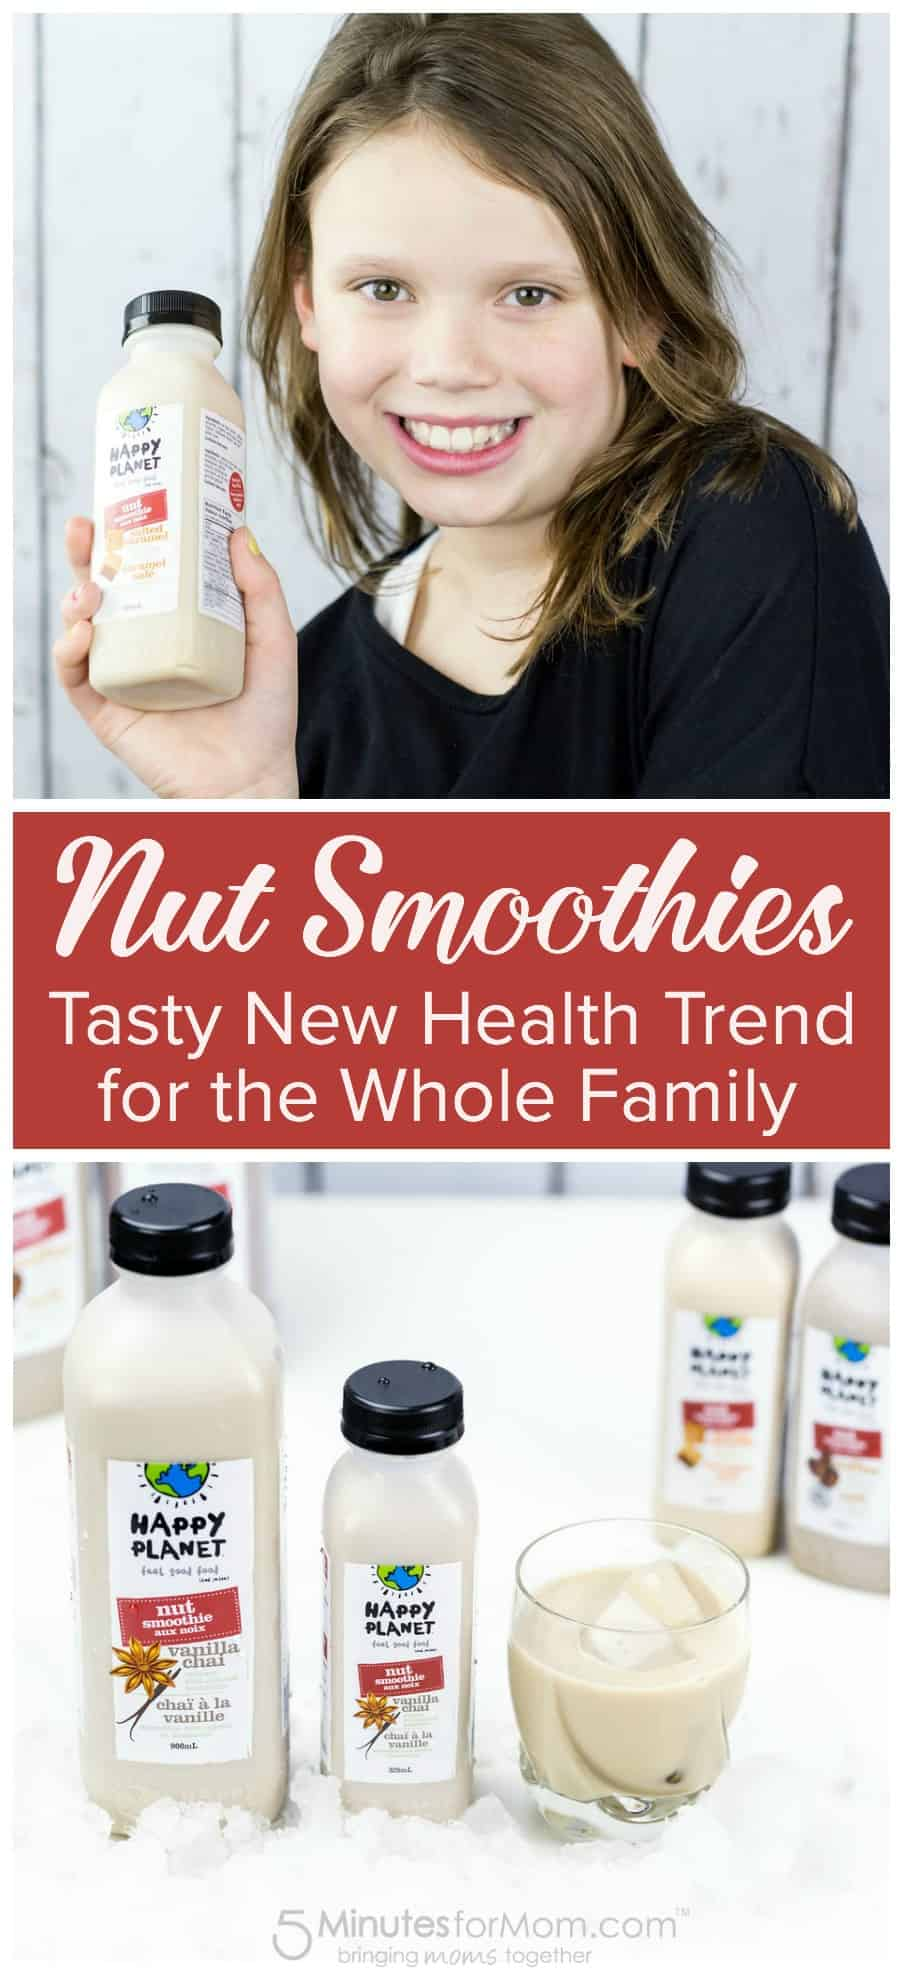 Nut Smoothies - Tasty New Health Trend for the Whole Family